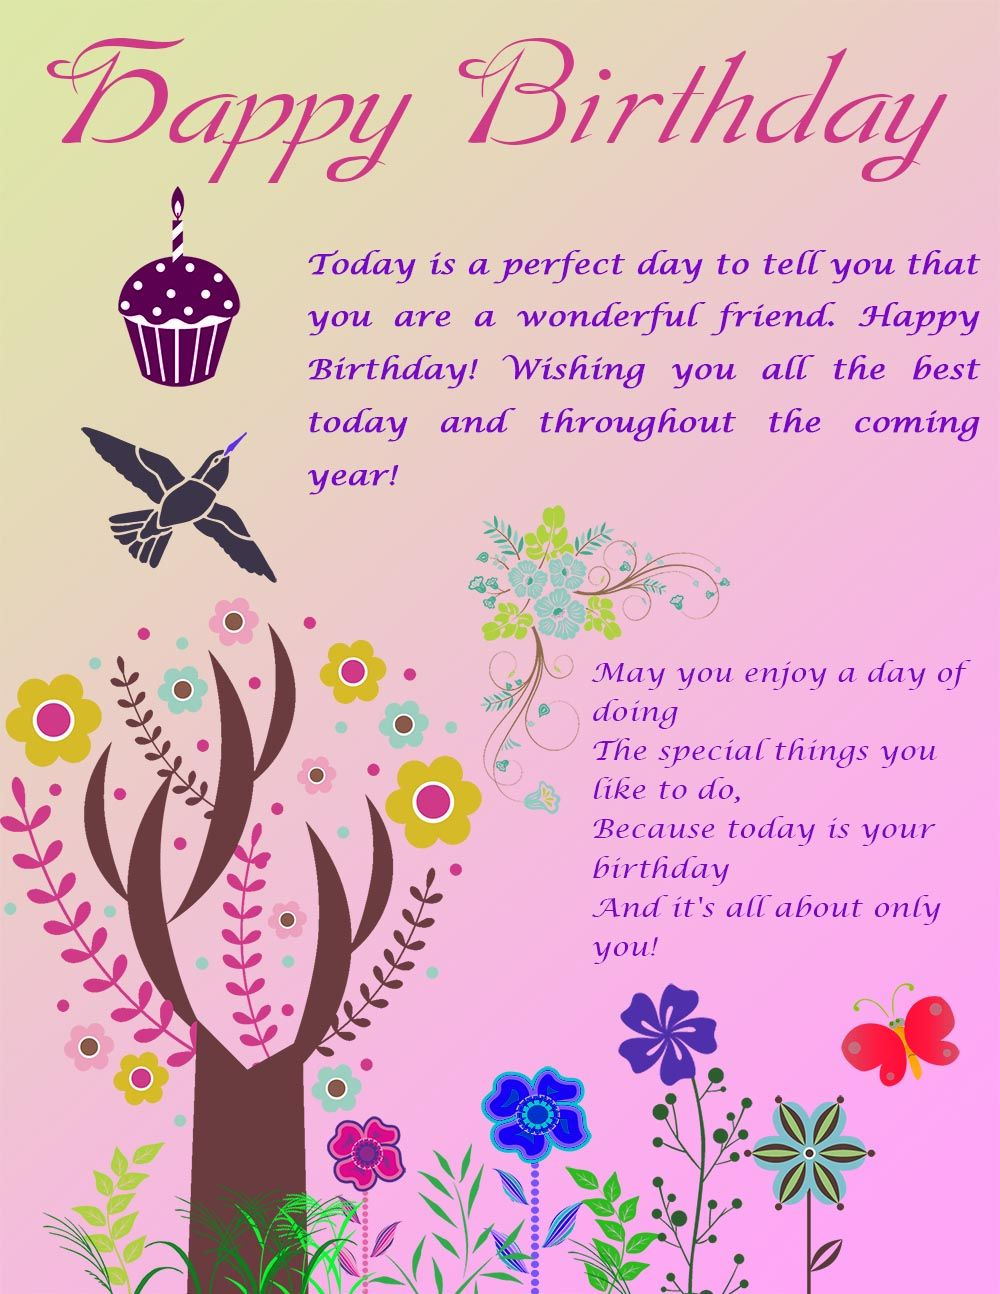 birthday images for friend Google Search – E Birthday Cards for Friend